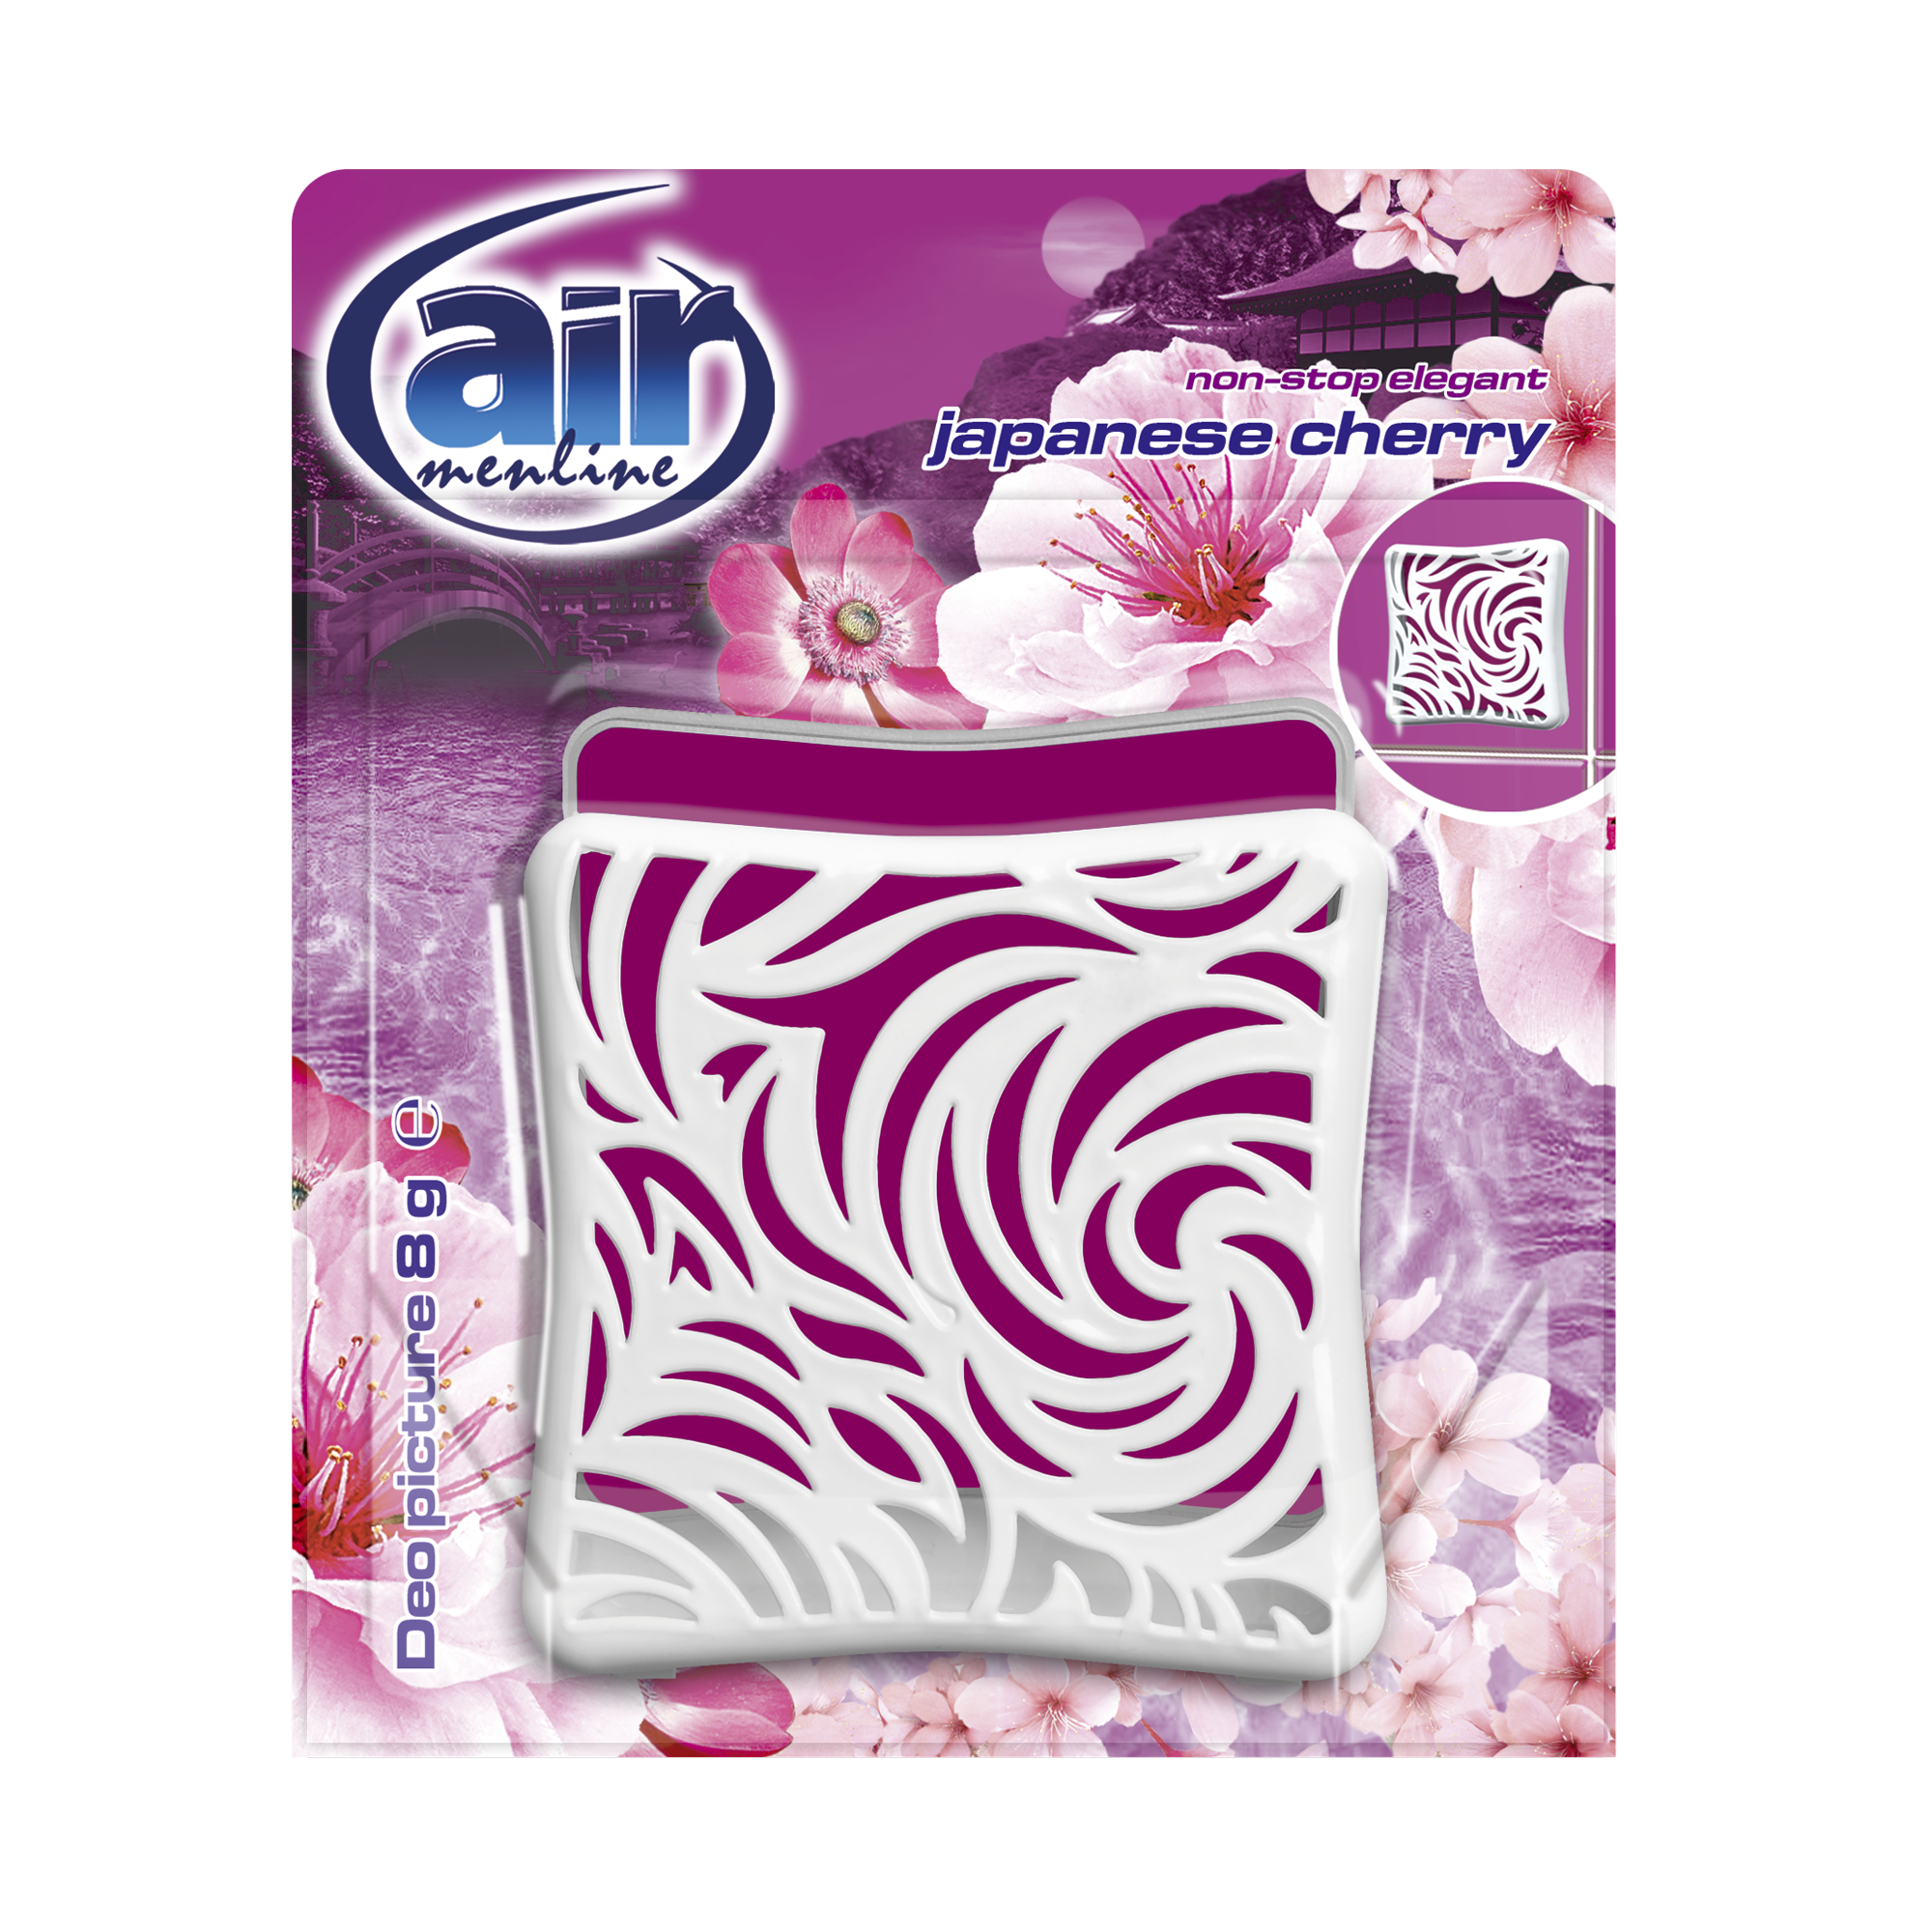 AIR menline deo picture air freshener Japanese Cherry